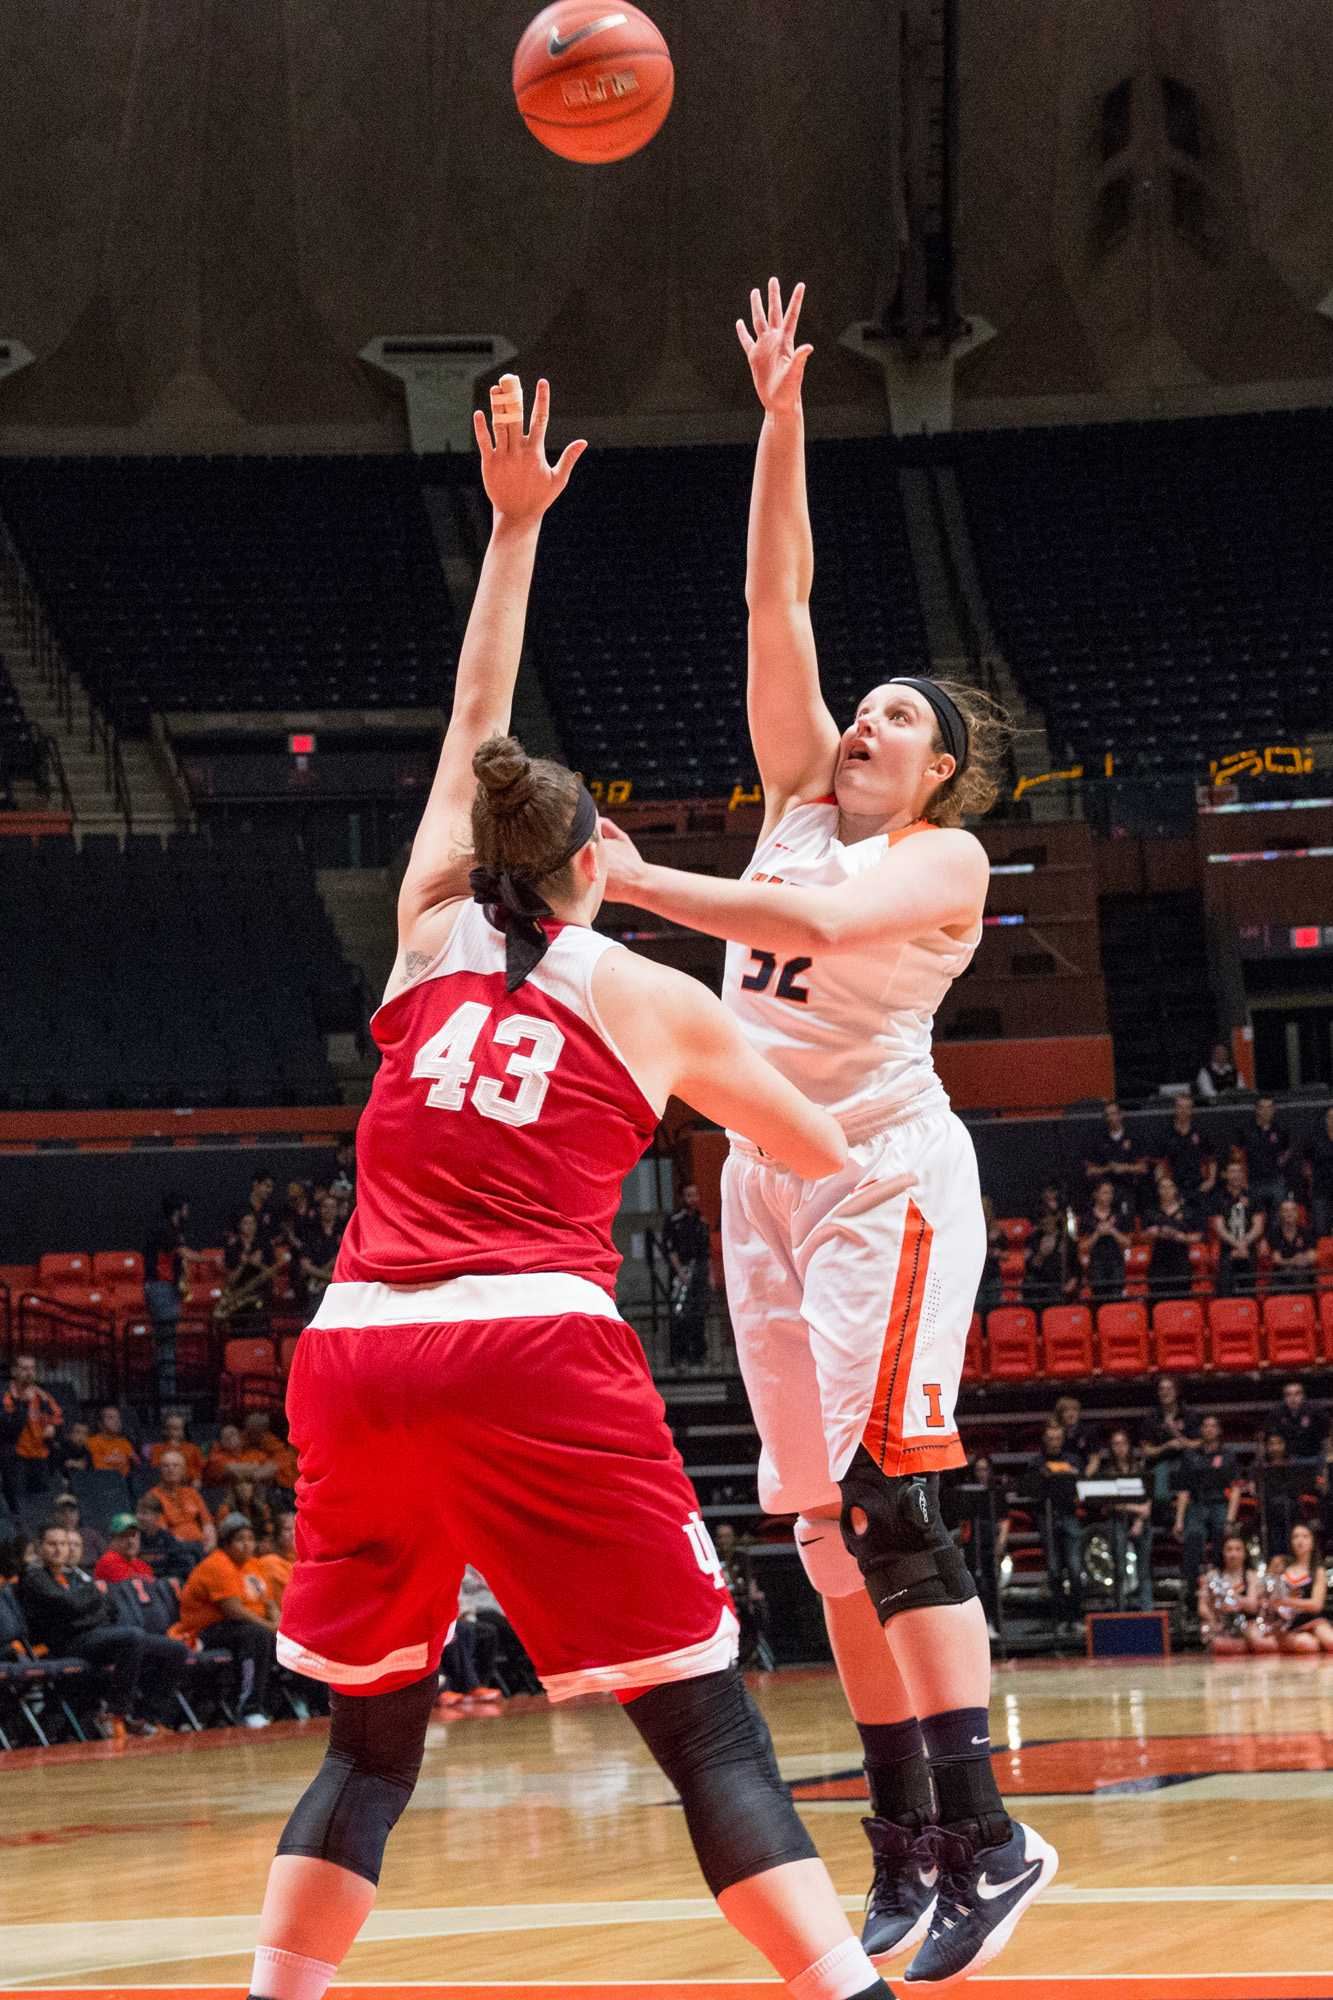 Illinois' Chatrice White shoots a hook shot during the game against Indiana at the State Farm Center on Feb. 10. The Illini lost 70-68.